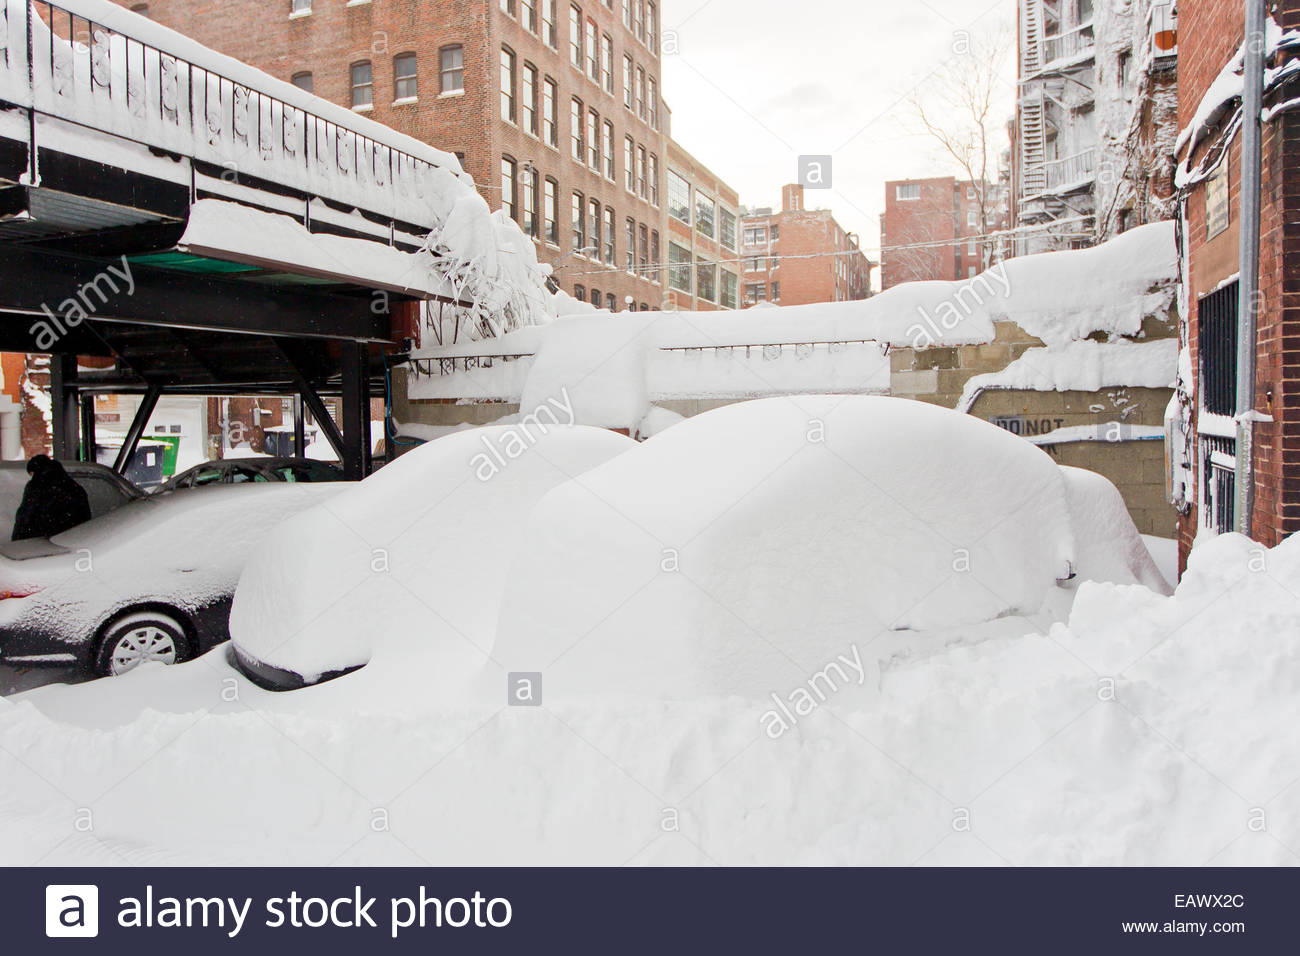 Snow completely buries vehicles after the historic blizzard that hit Boston in 2013. - Stock Image